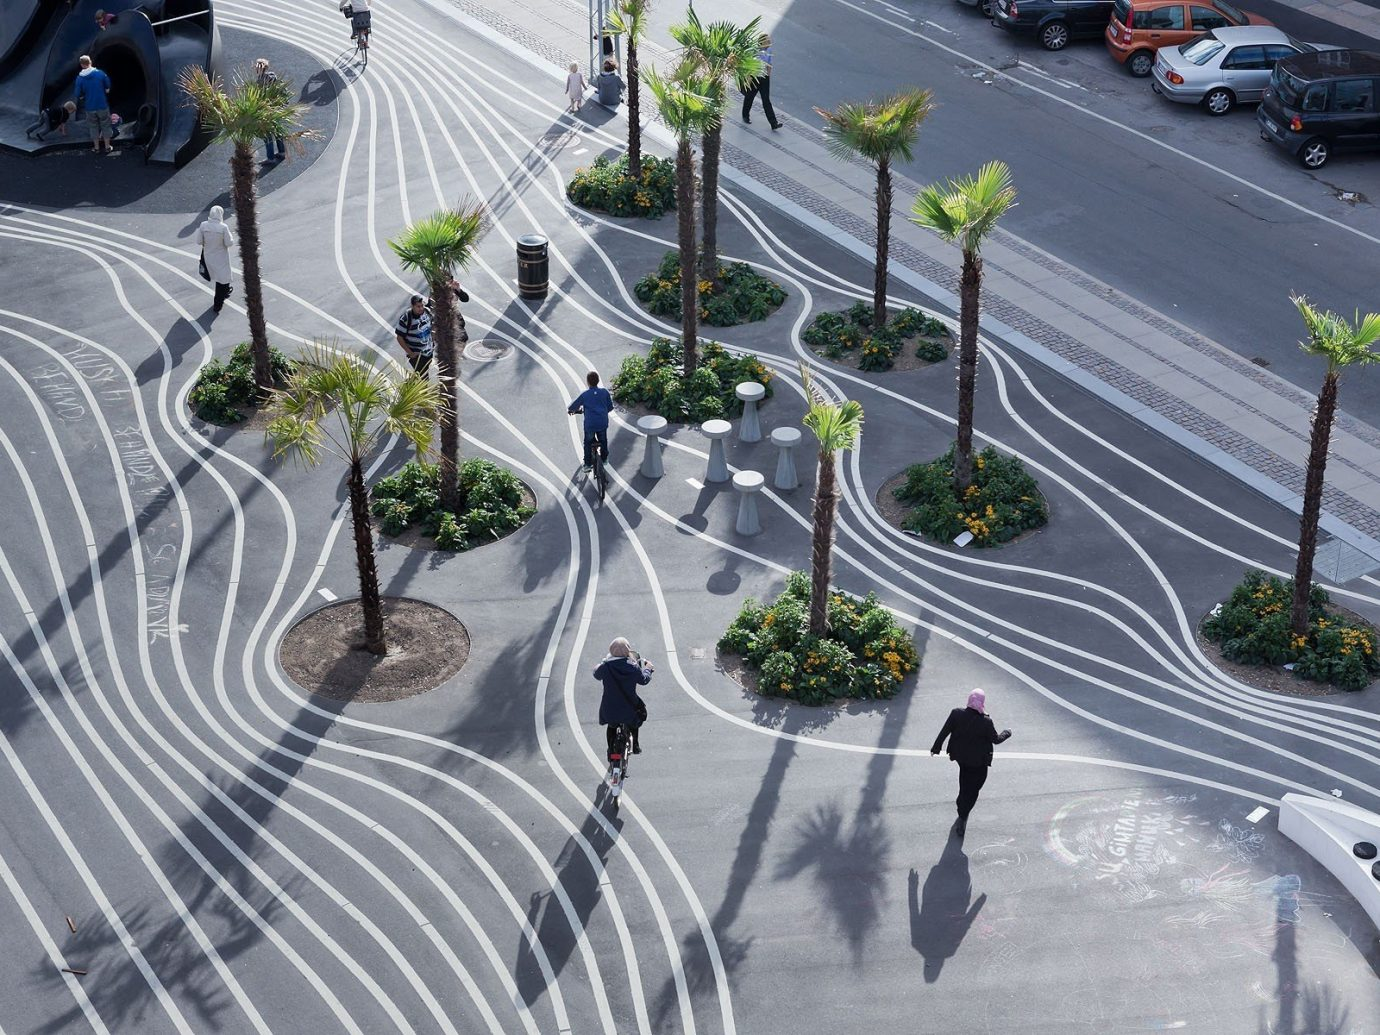 Trip Ideas lane road road surface pedestrian crossing pedestrian way residential area race track street intersection infrastructure urban design traffic vehicle parking lot